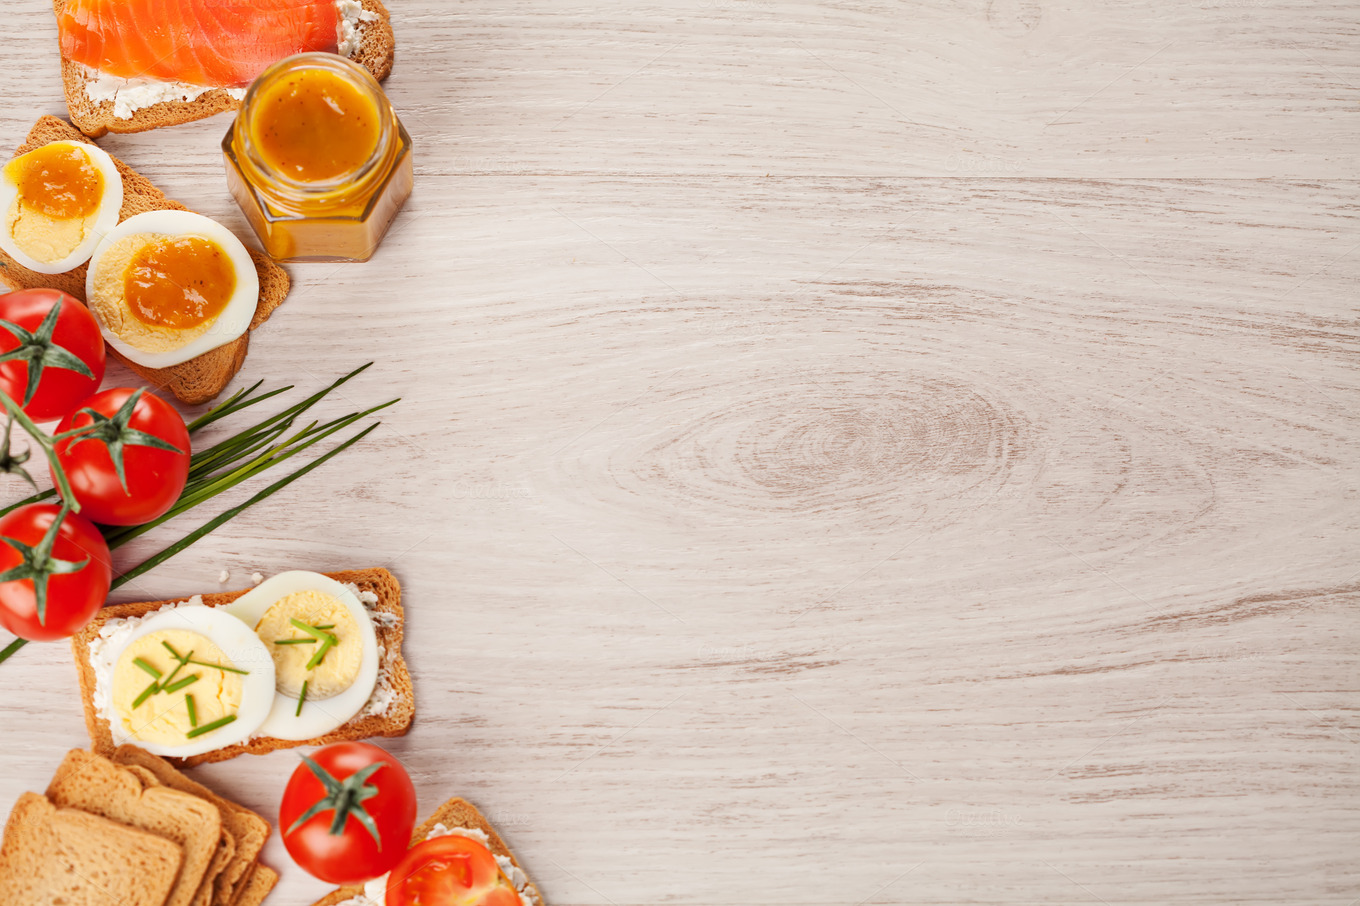 Food And Drink Background Wallpapers Photos Pictures To